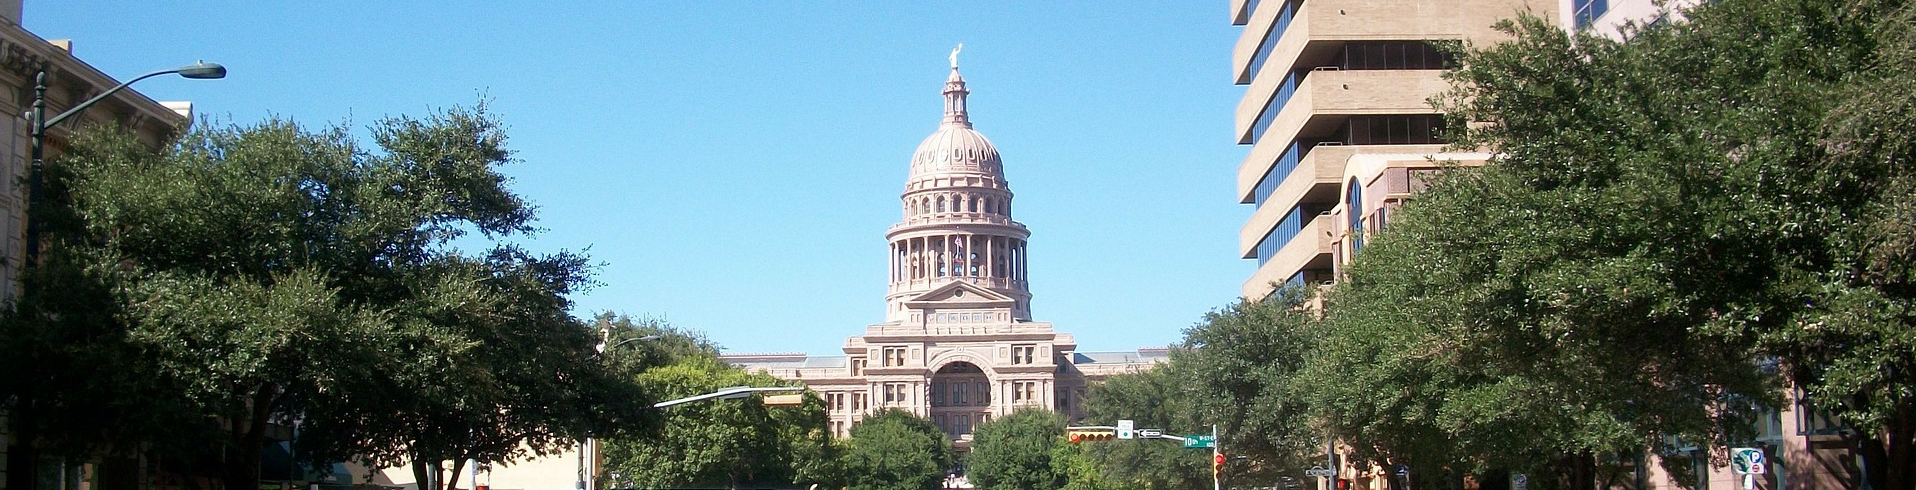 Based out of Austin Texas